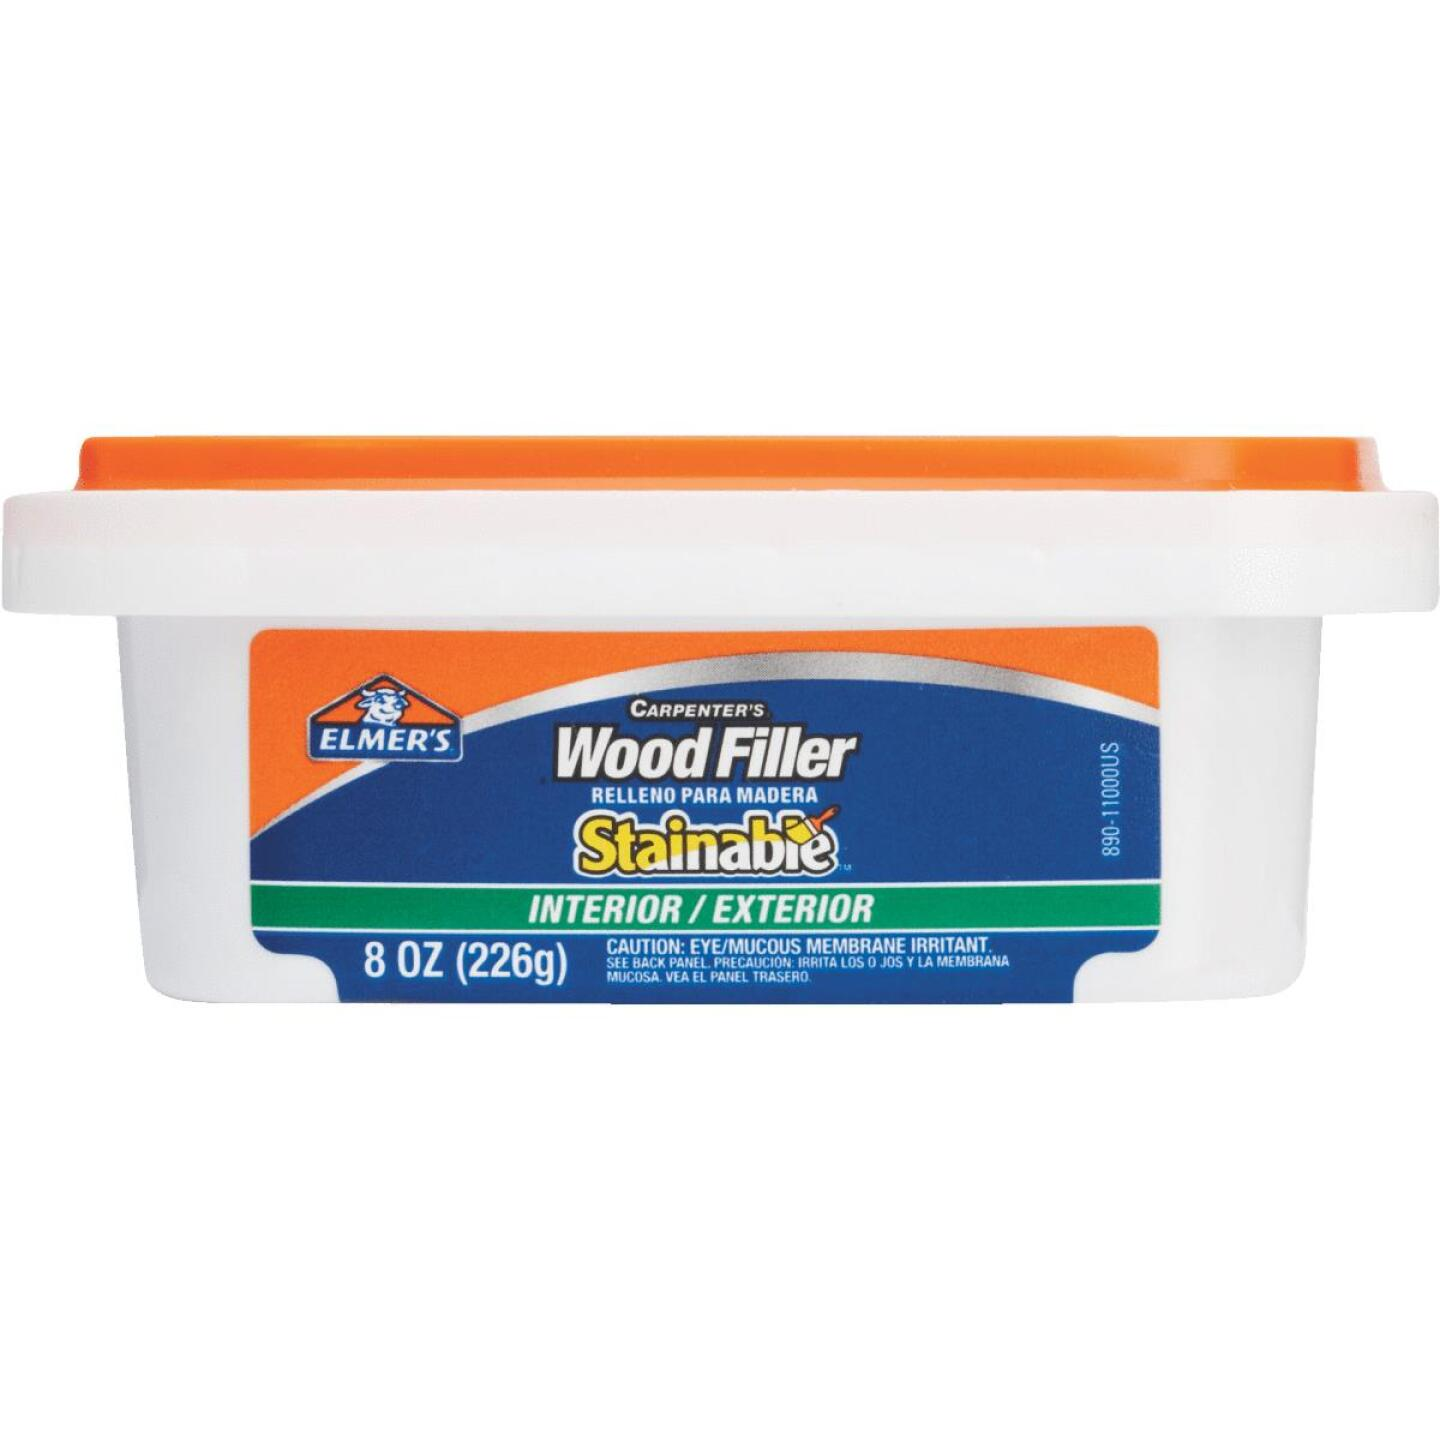 Elmer's Stainable Light Tan 8 Oz. Wood Filler Image 4